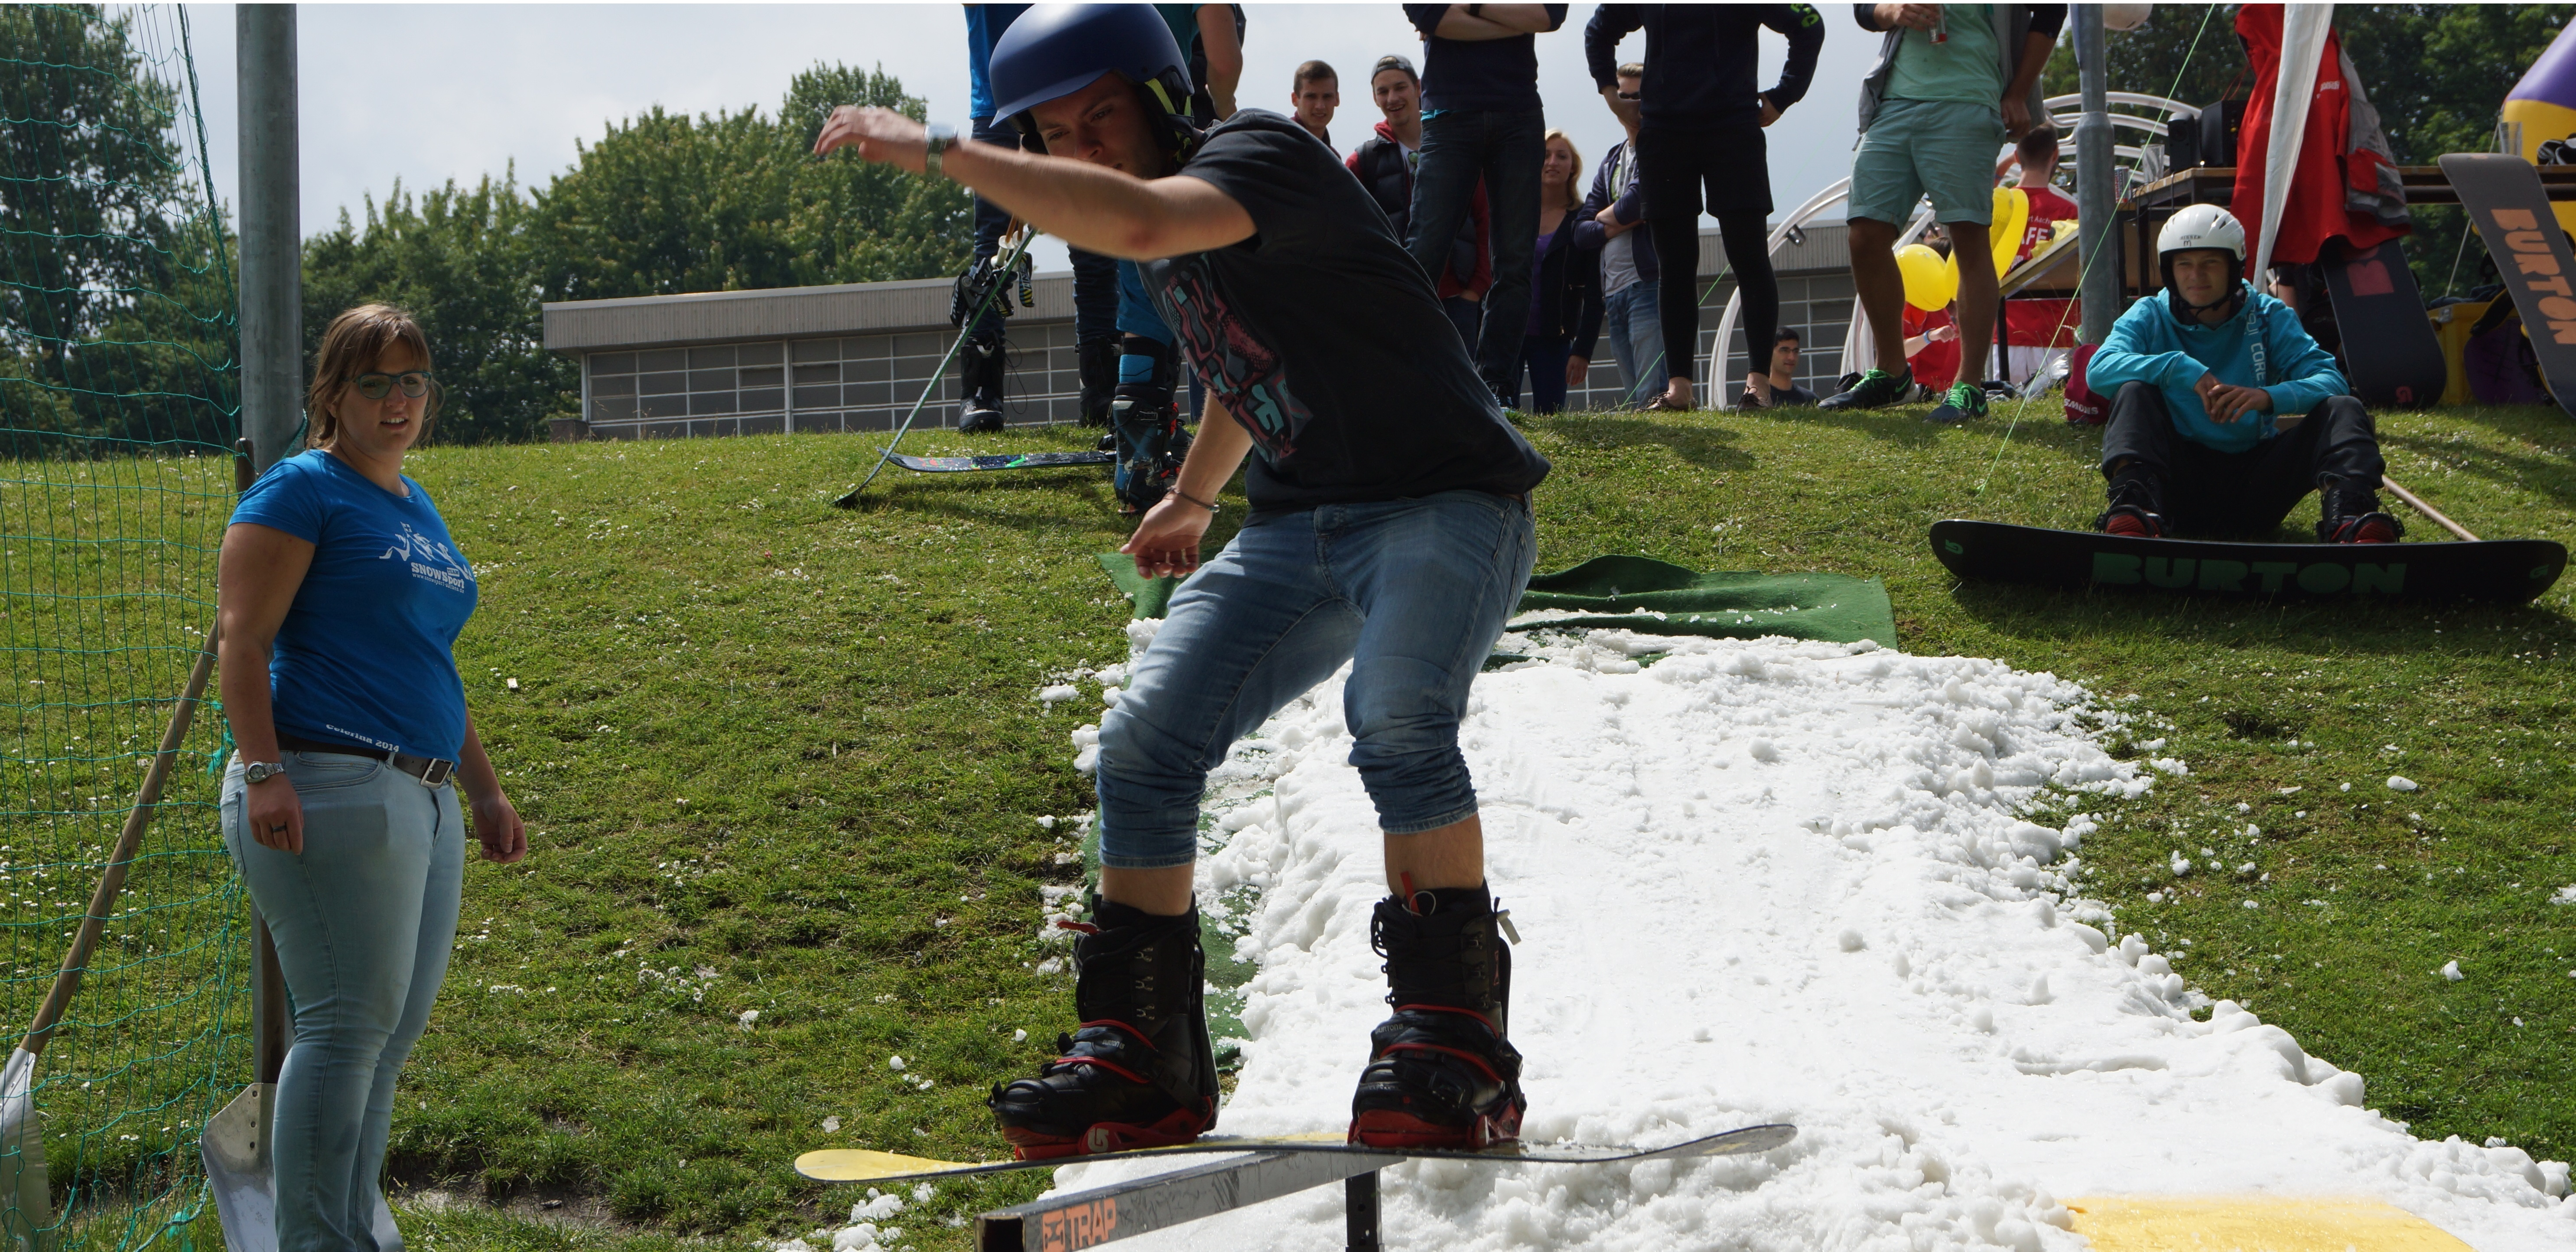 Snowboarder bei Sports Day